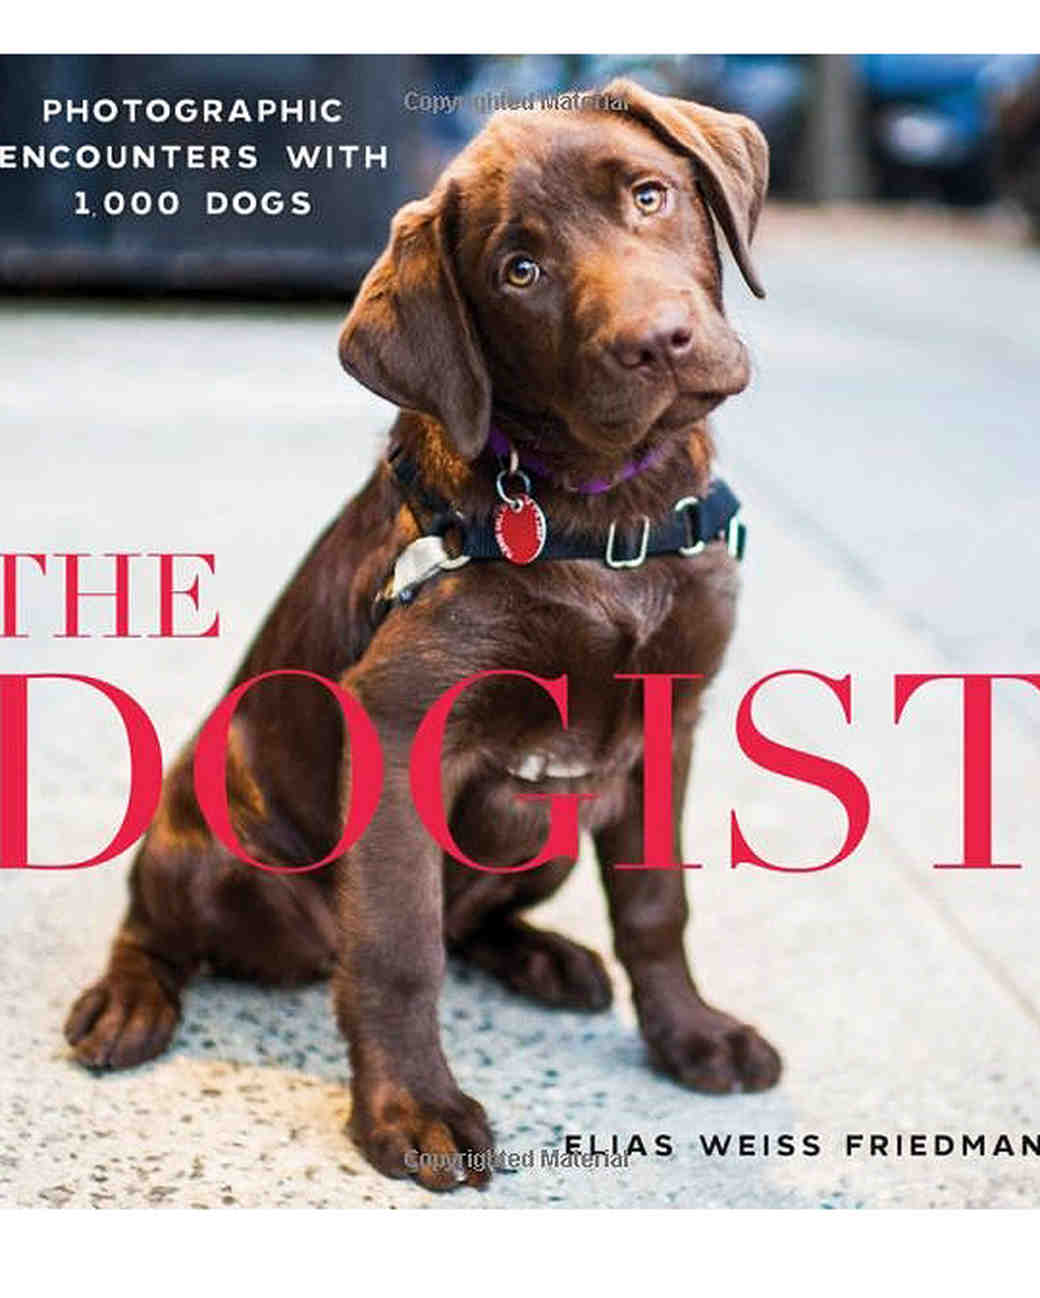 engagement-gifts-dogist-coffee-table-book-0316.jpg